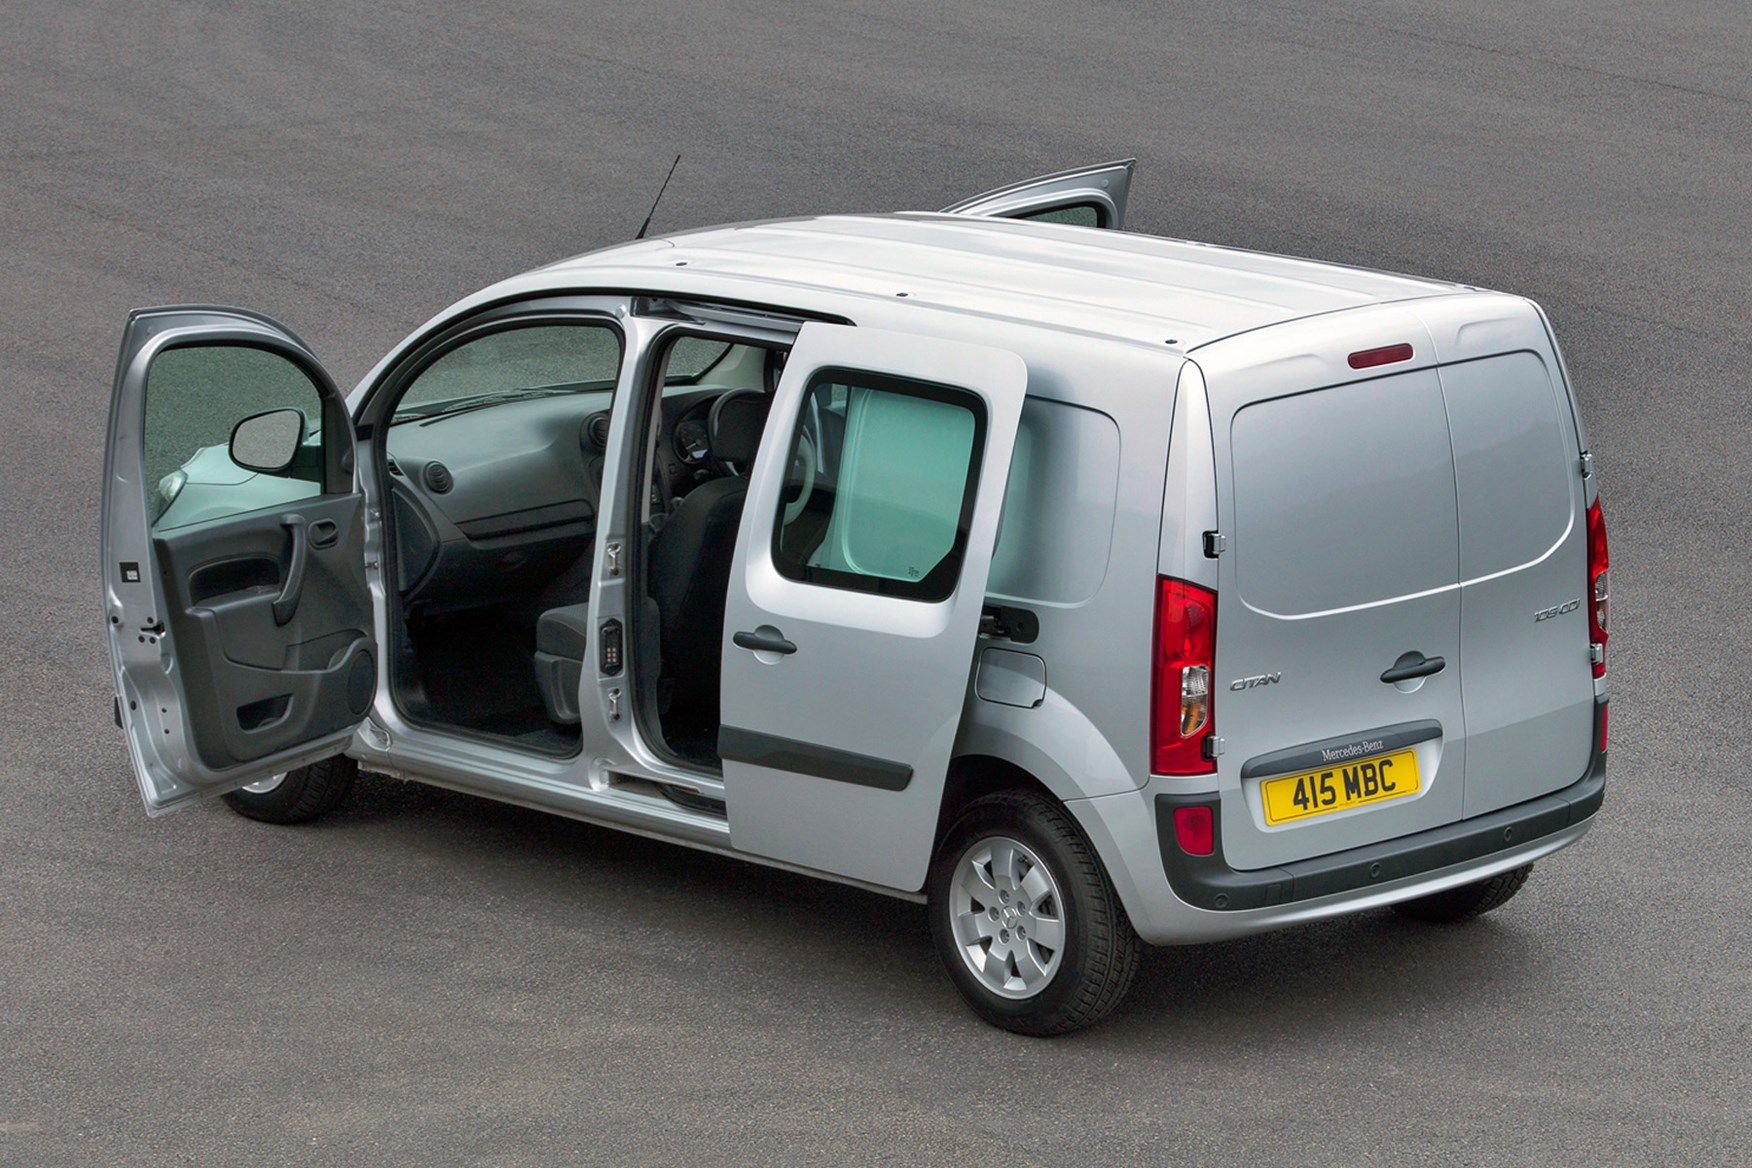 Mercedes-Benz Citan full review on Parkers Vans - load area dimensions